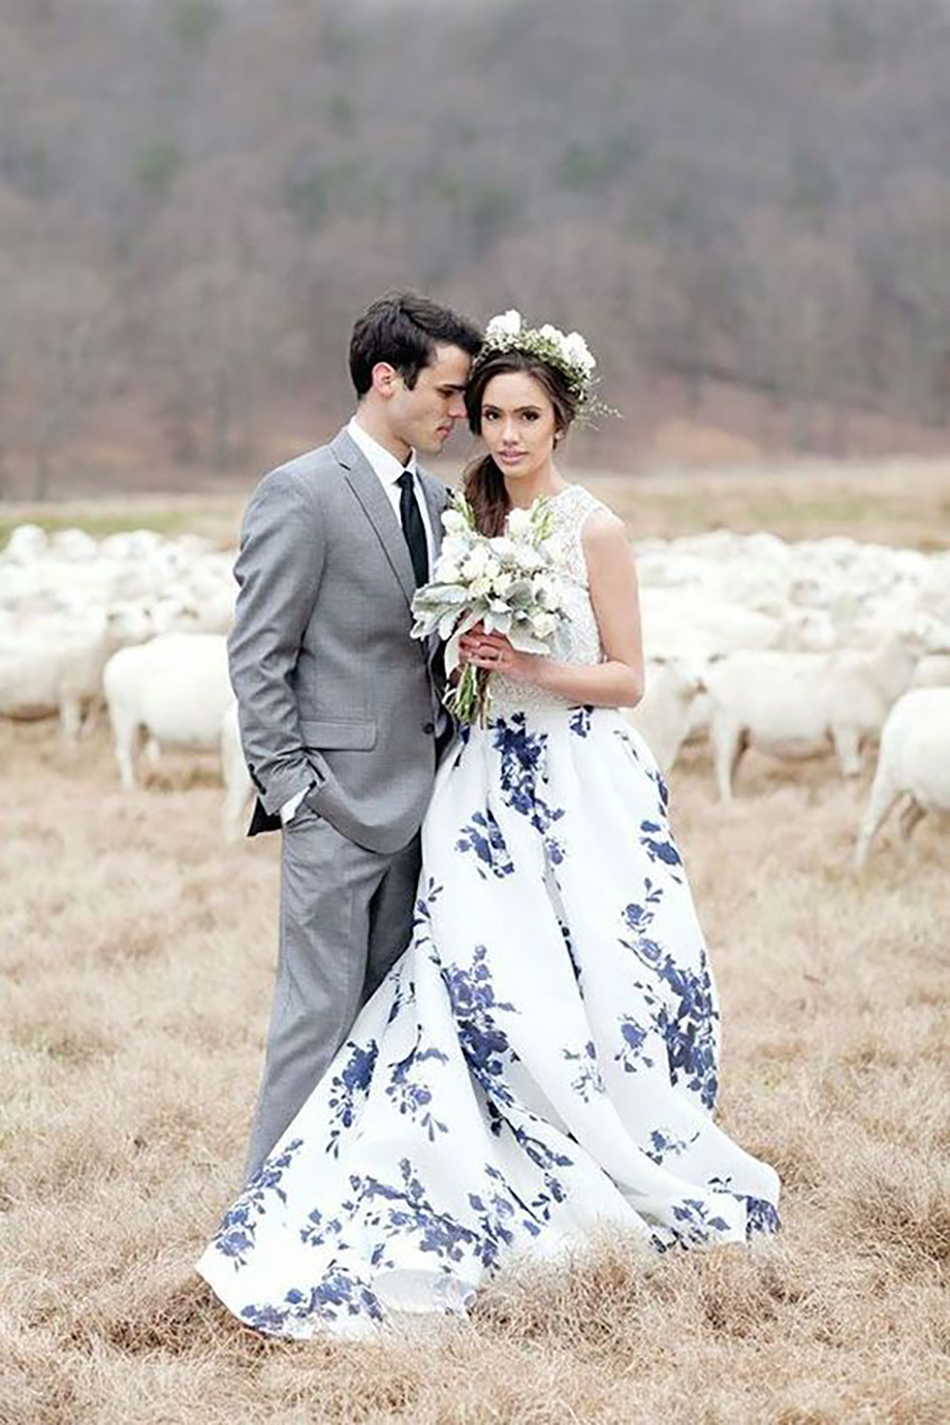 The ultimate guide to planning your spring wedding